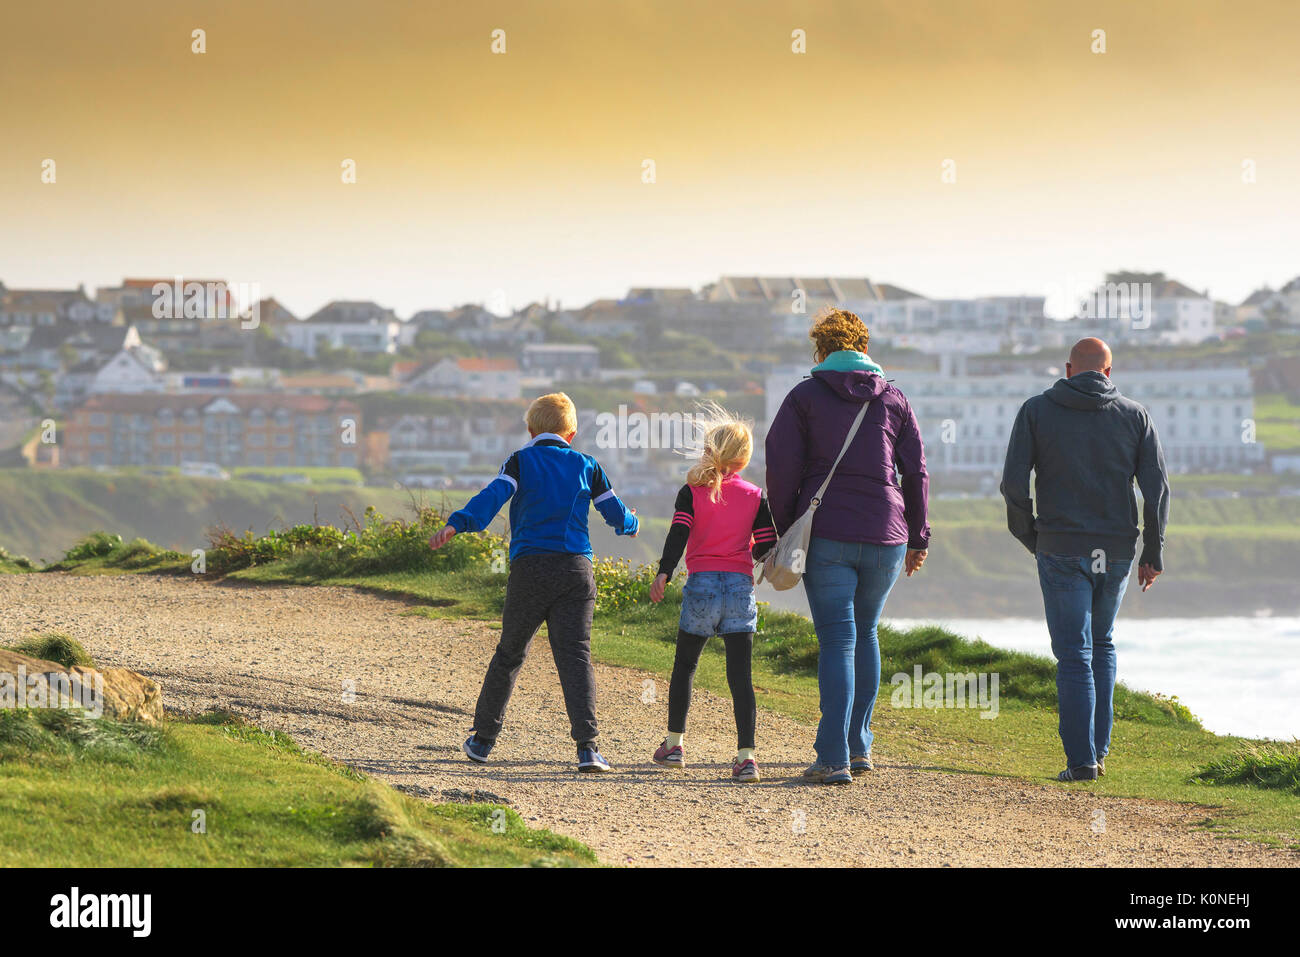 A family of holidaymakers enjoying a bracing walk in windy condition. - Stock Image